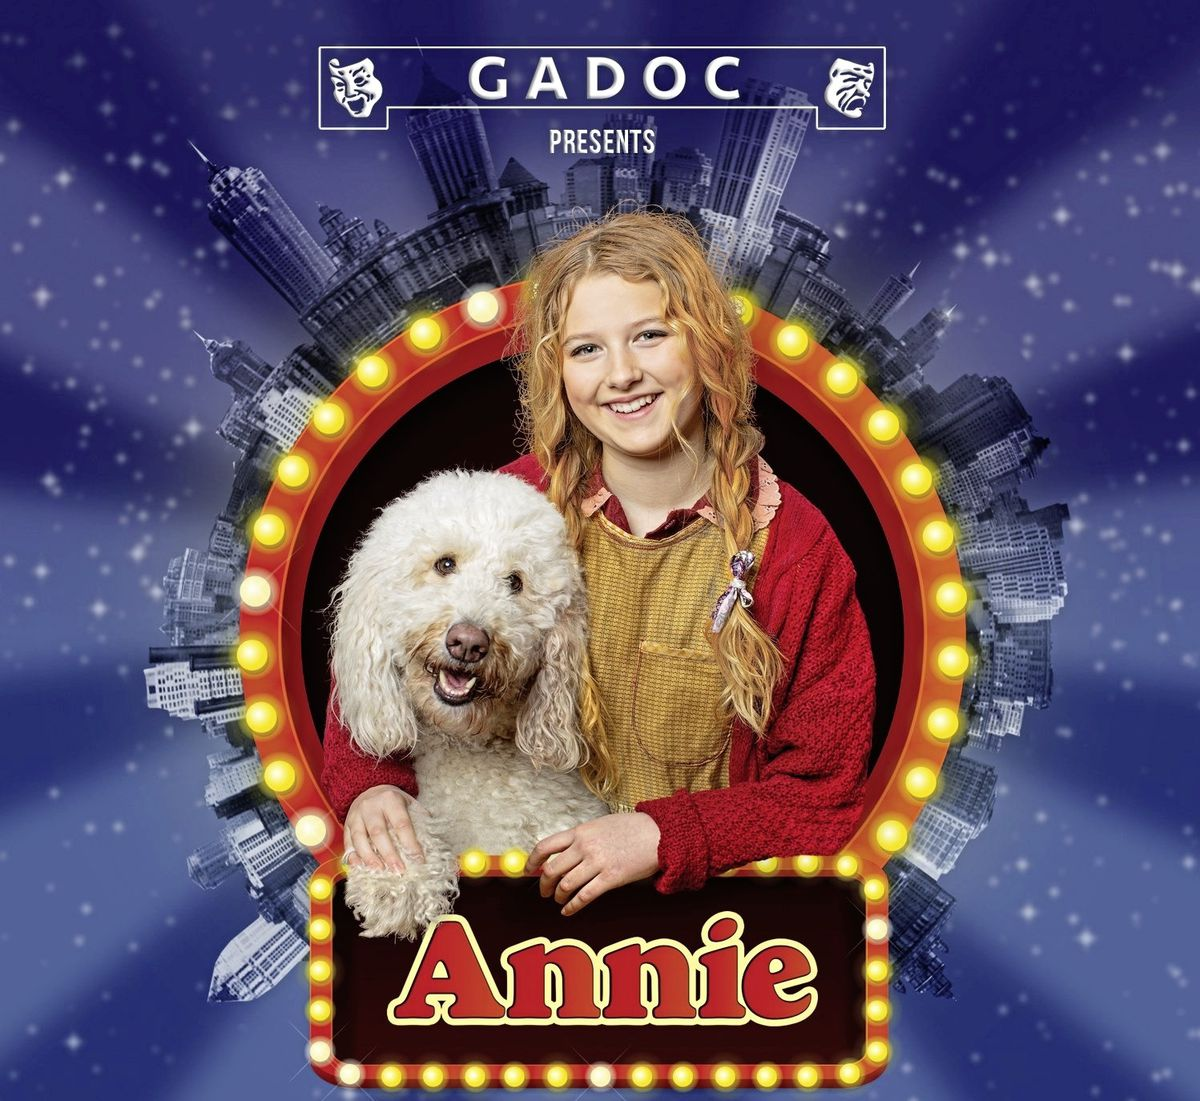 GADOC's poster of Annie. (29385798)